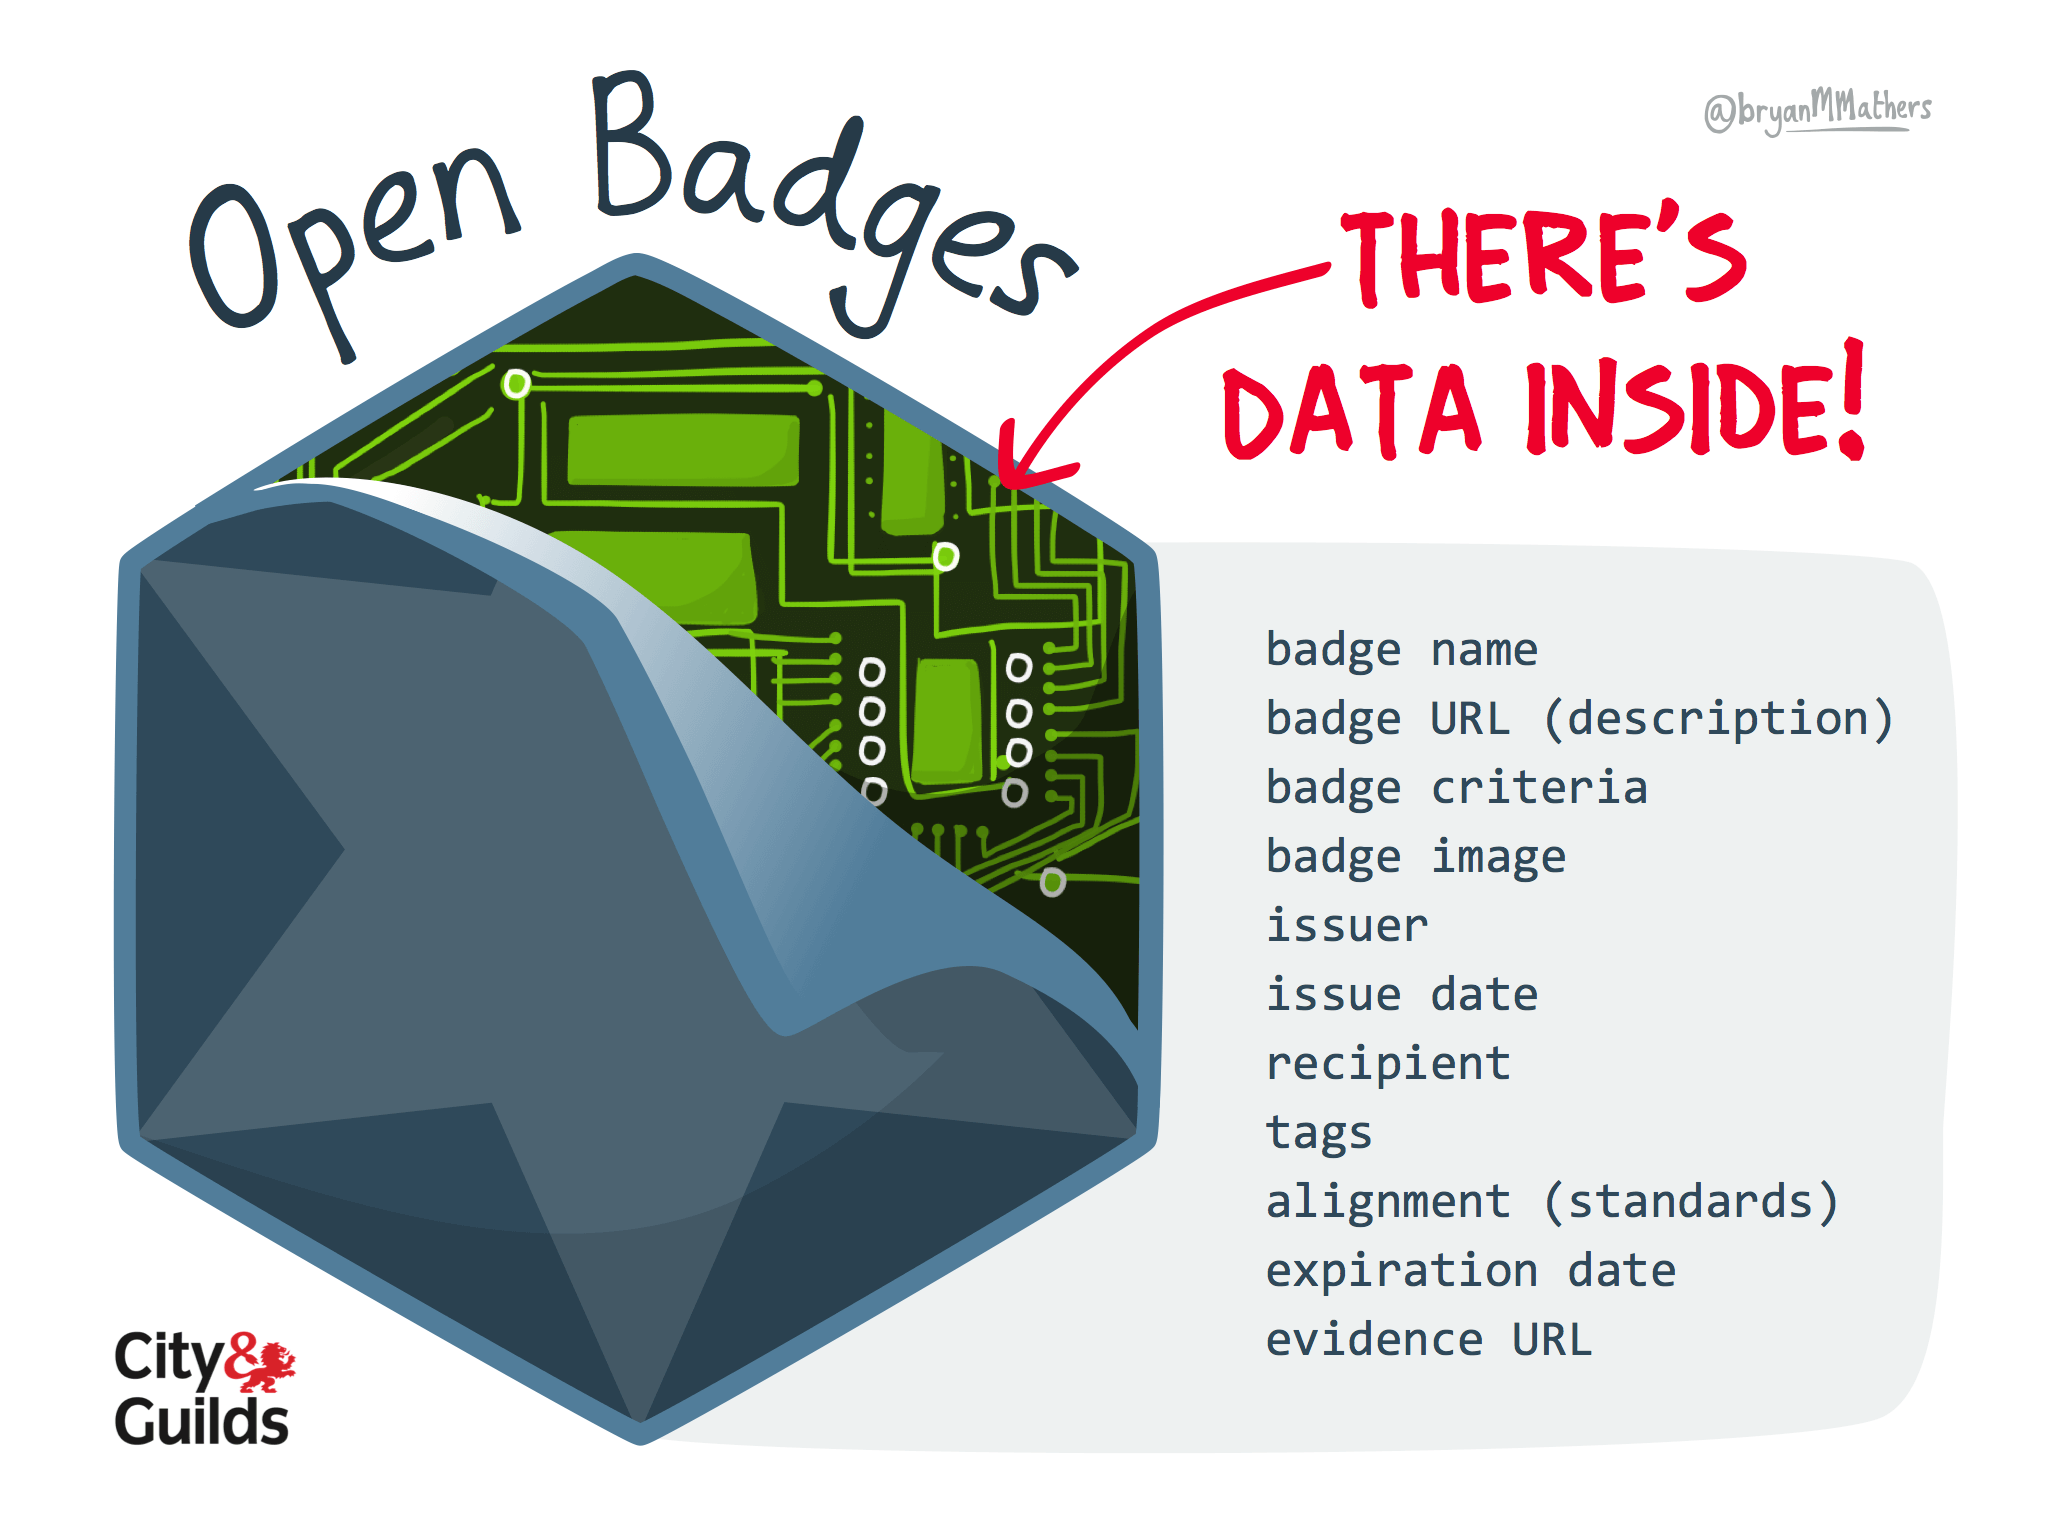 Open Badges (P.S. there's data inside…)